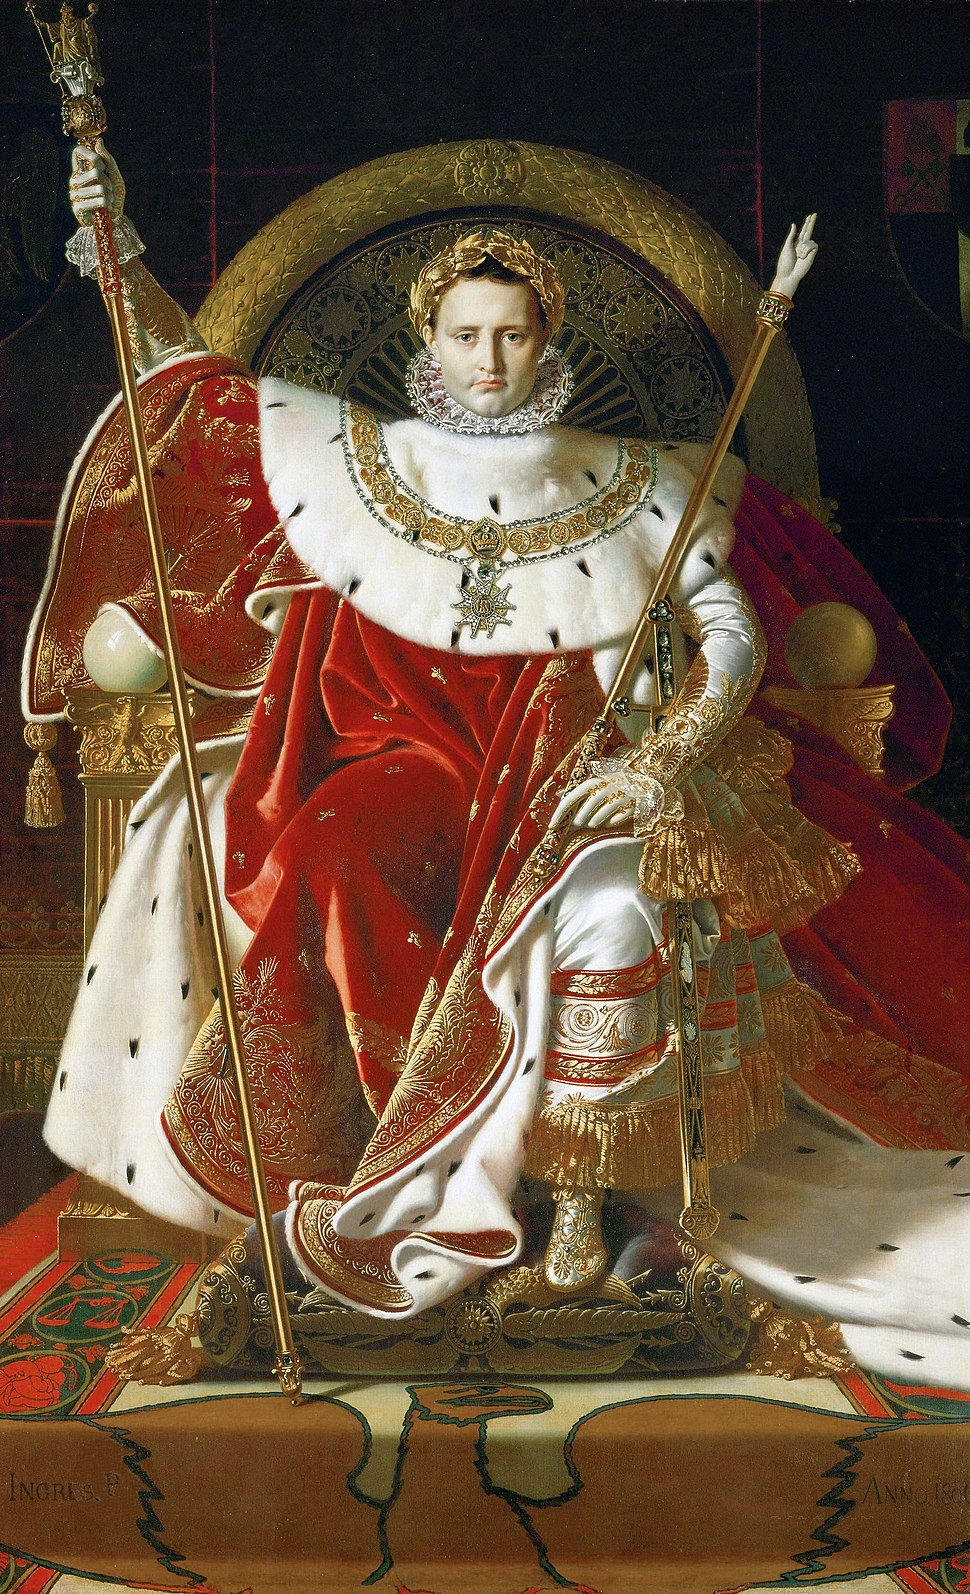 Ingres, Napoleon on his Imperial throne